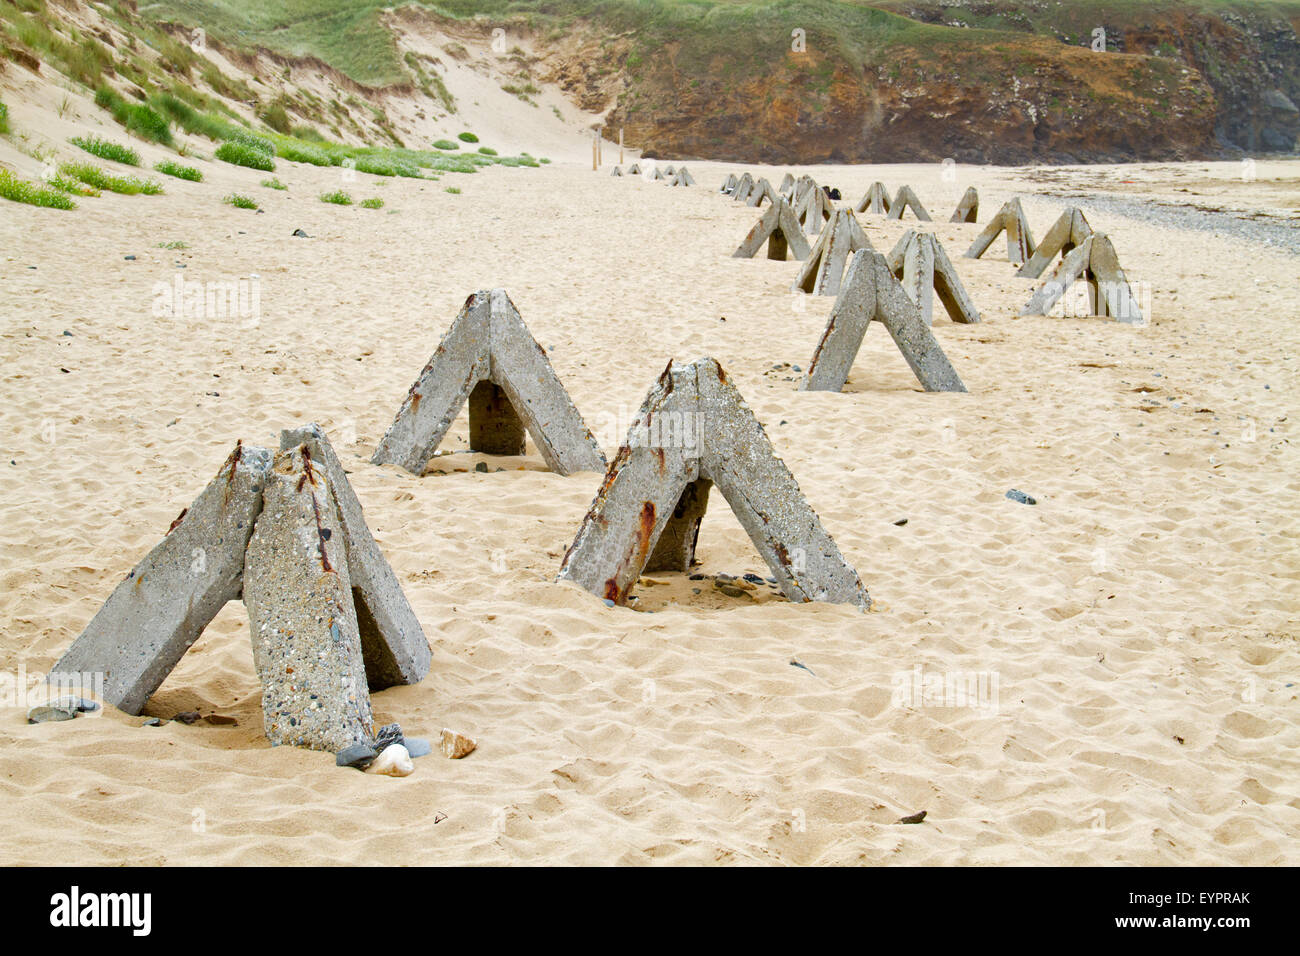 Concrete obstacles on the beach of Brittany, France, remainders of the Atlantic Wall - Stock Image